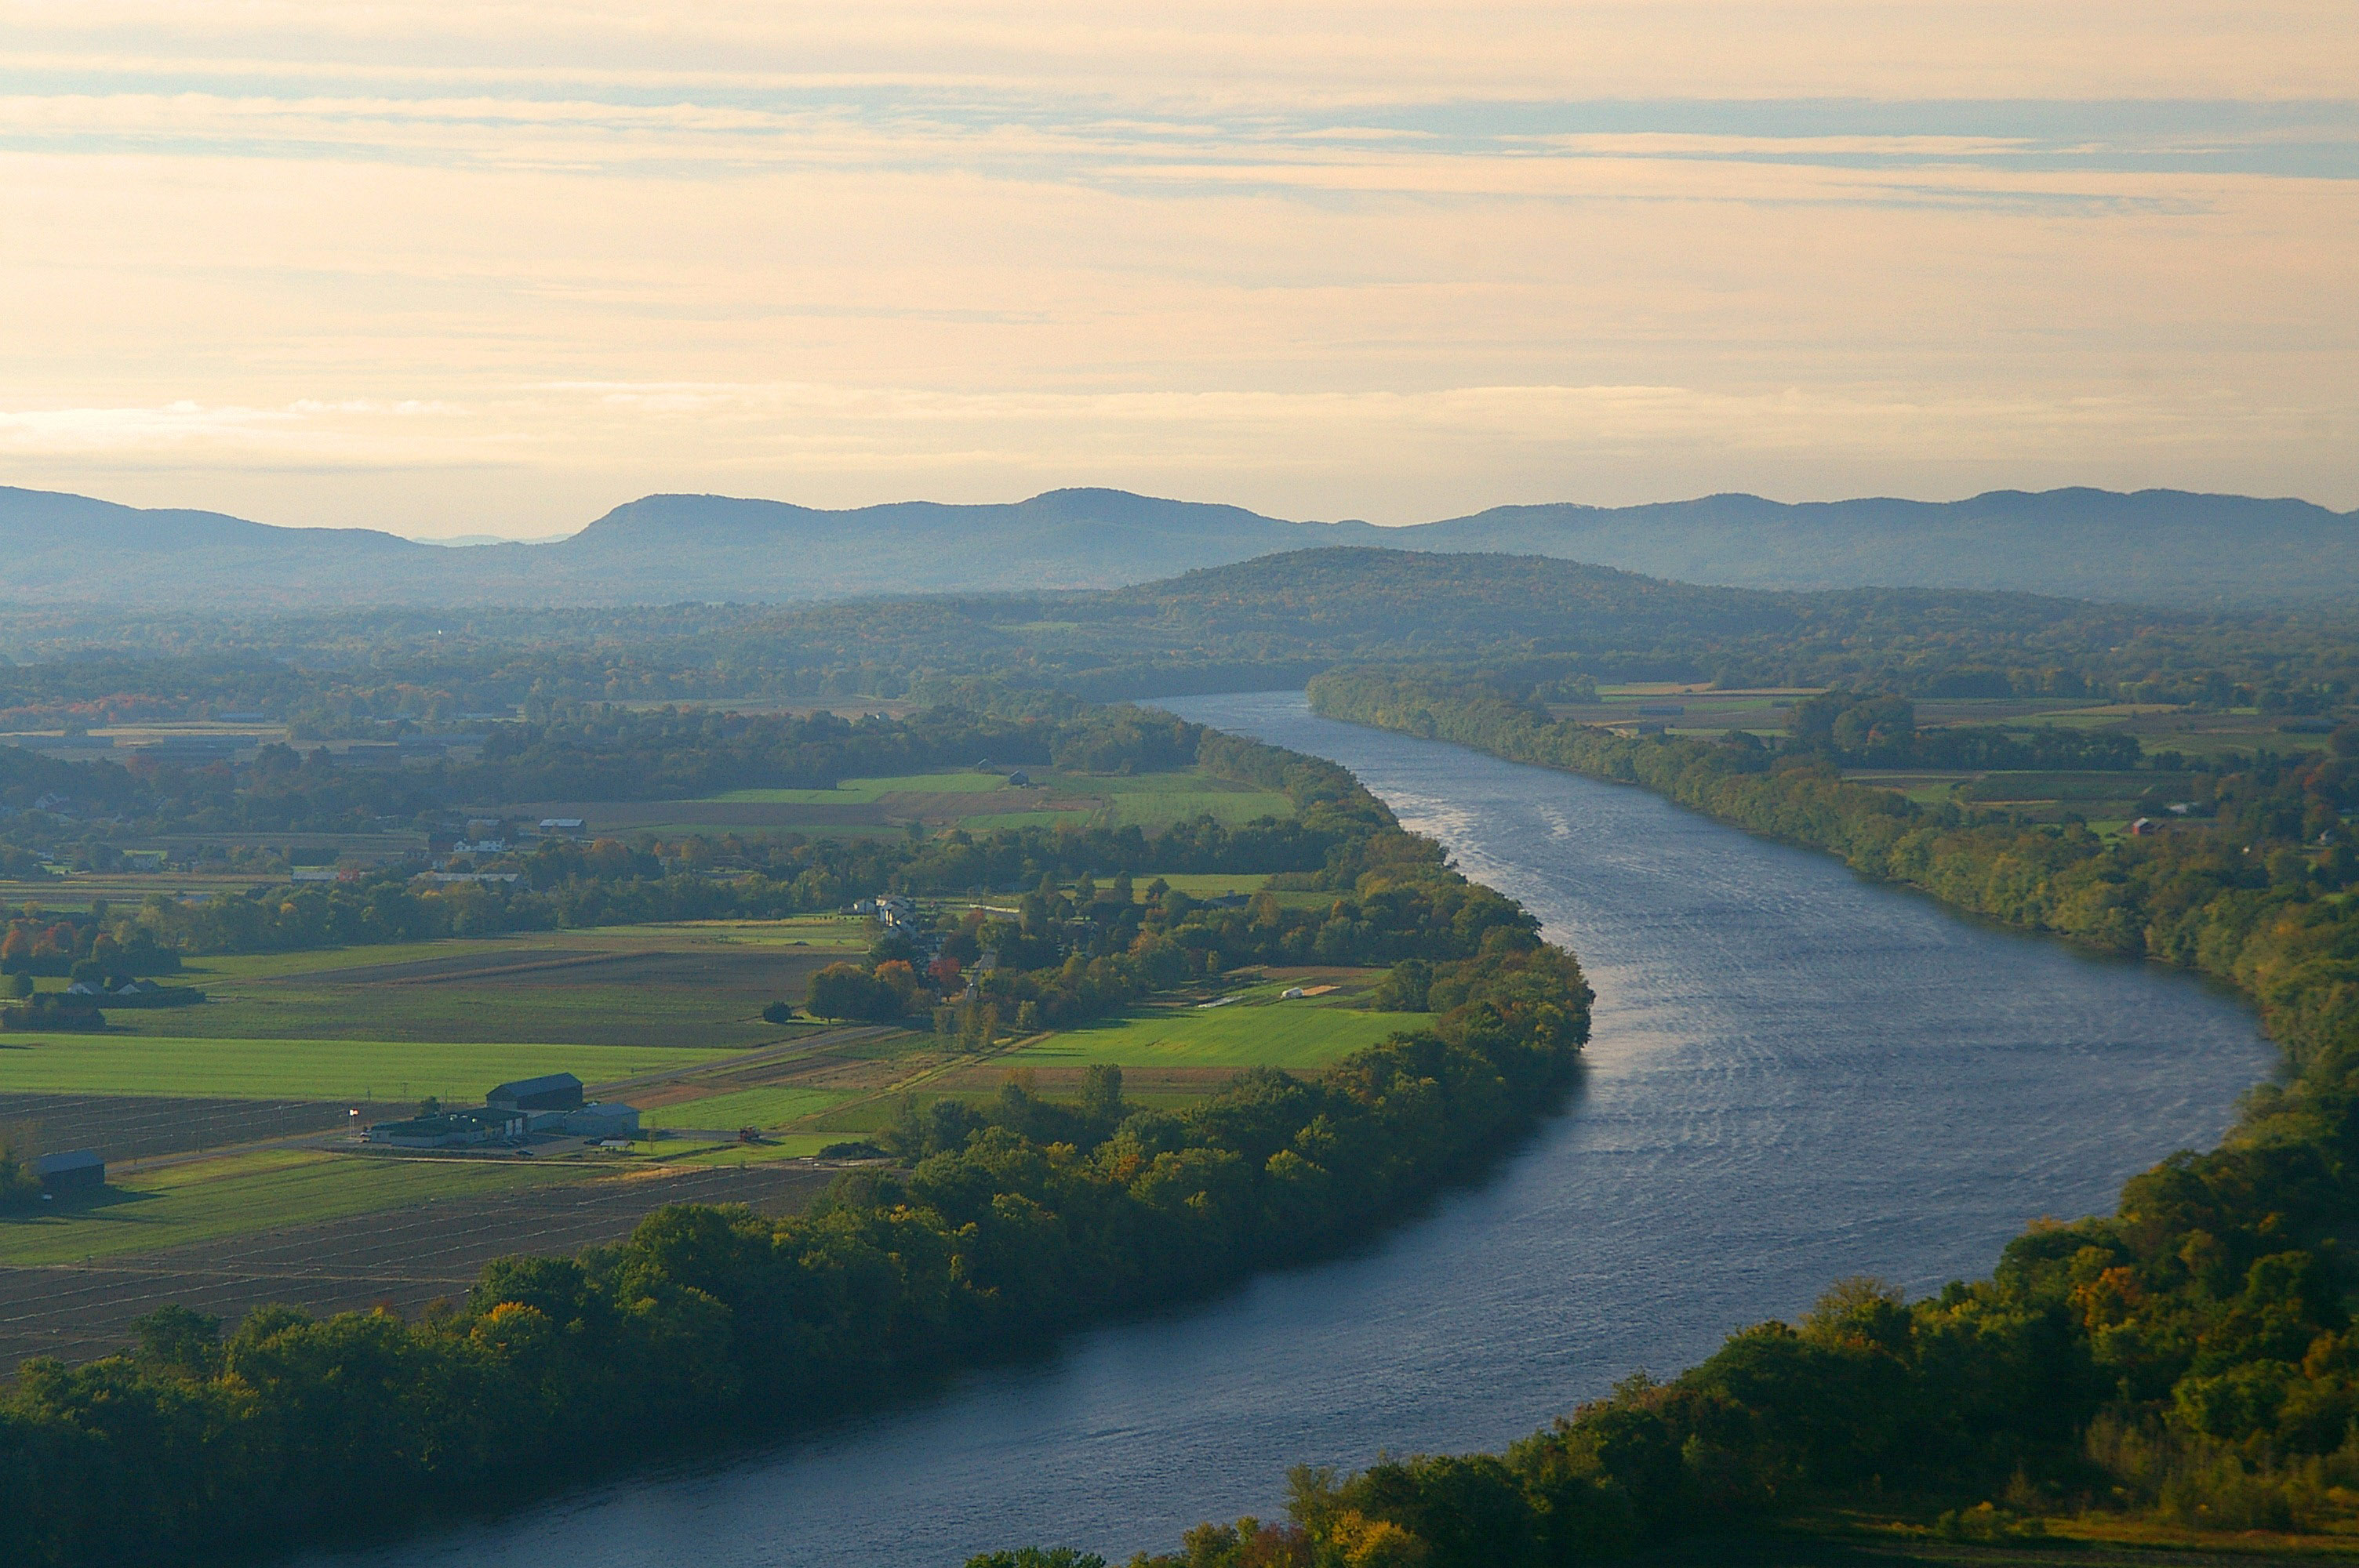 Landscape of the Connecticut River and Mount Sugarloaf.